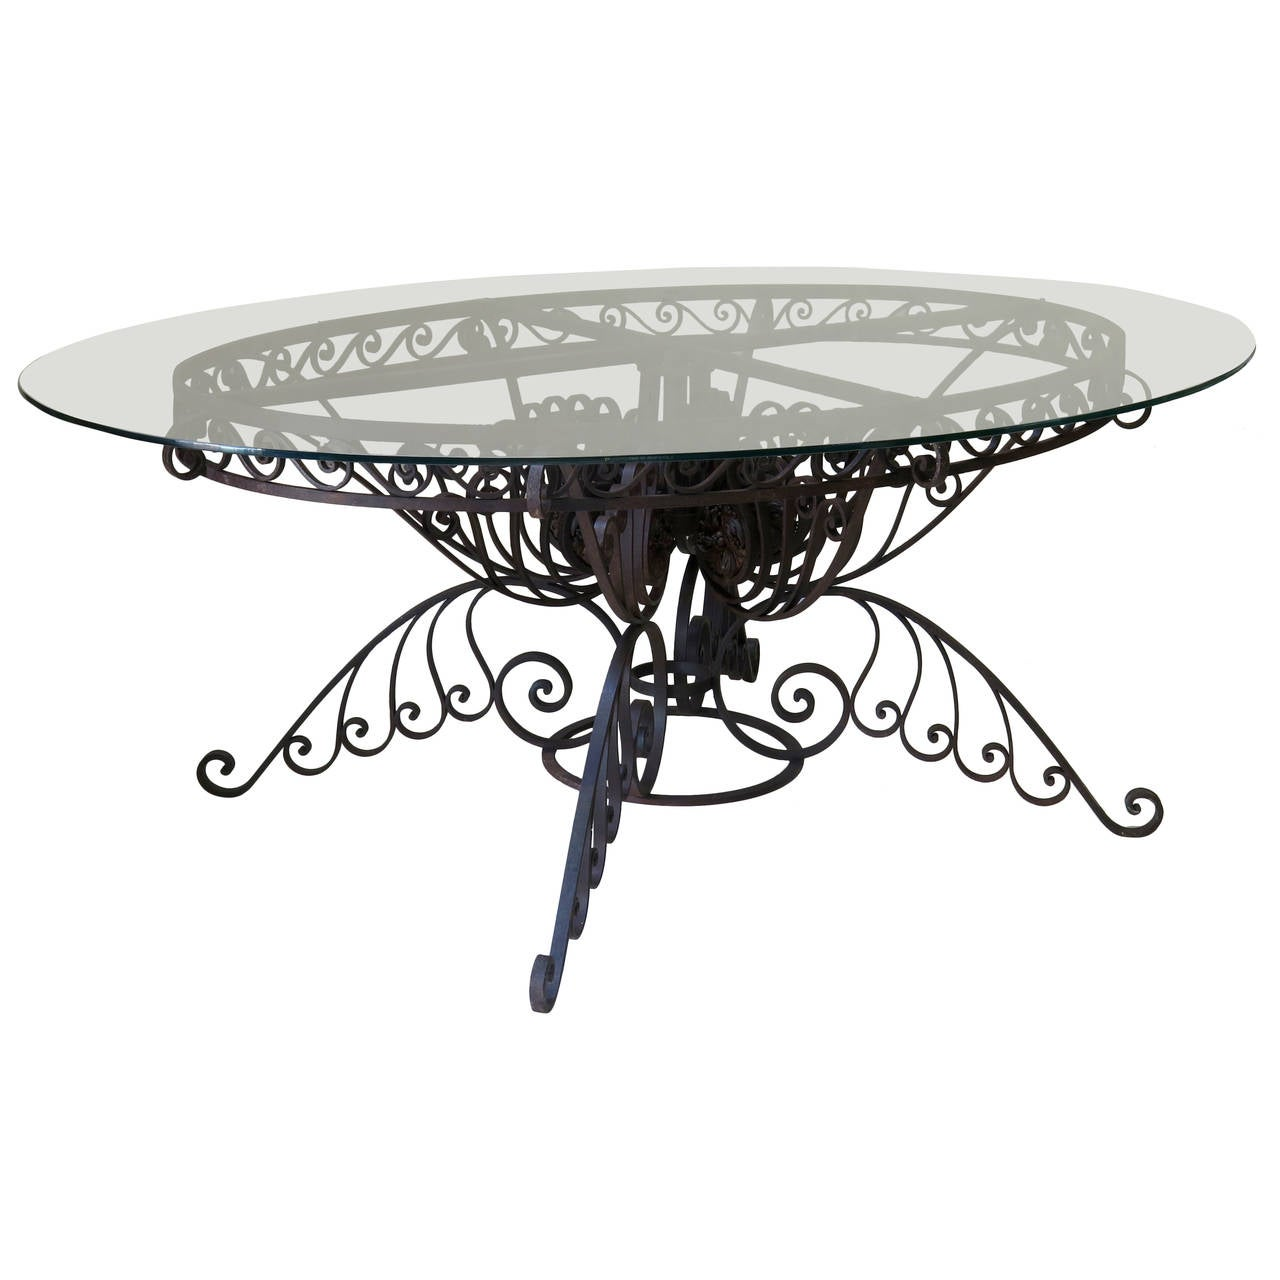 Spectacular Oval Wrought Iron Art Deco Dining Table France 1930s For Sale At 1stdibs